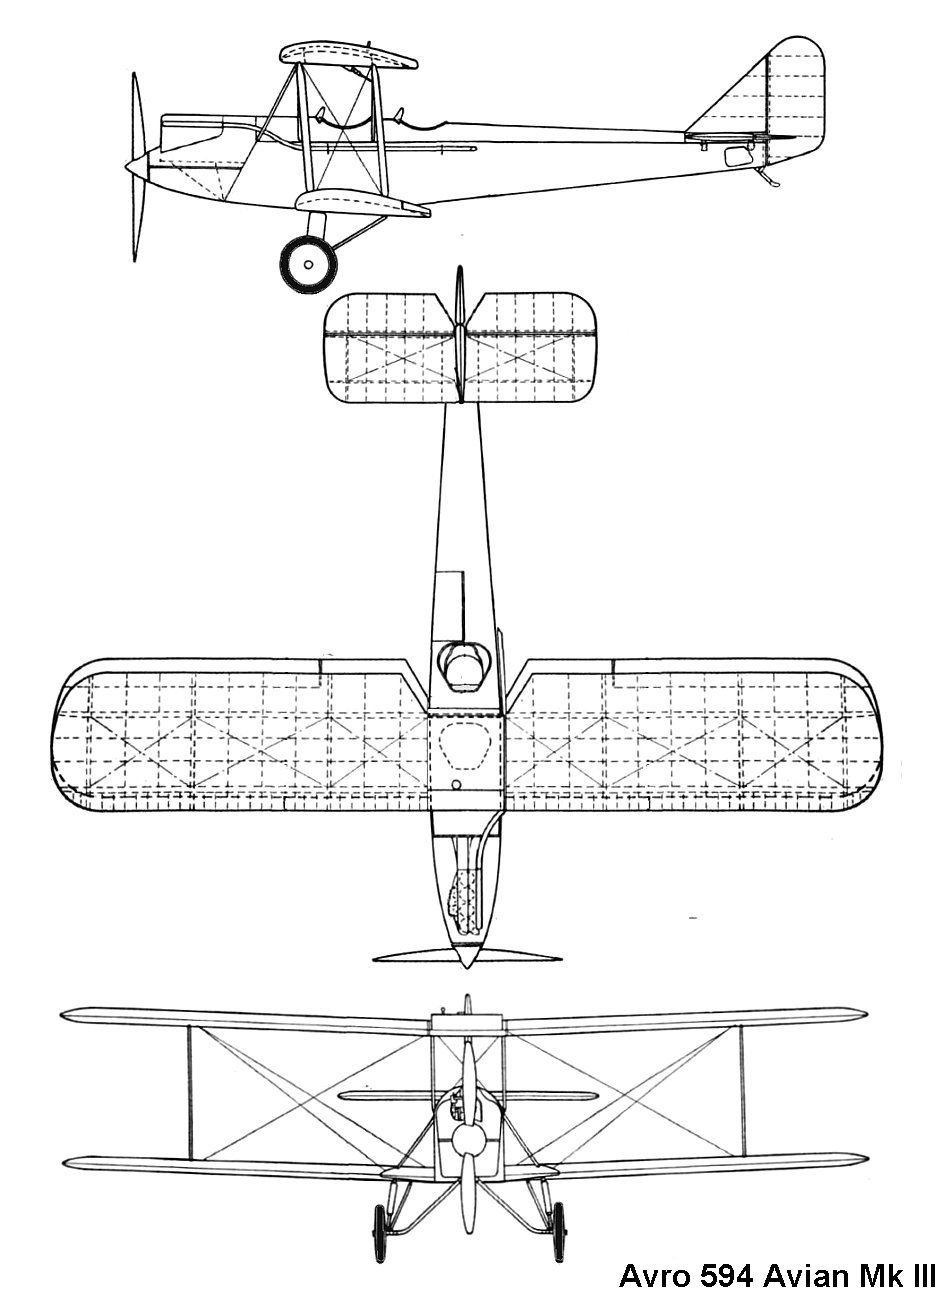 Avro 594 Avian III blueprint